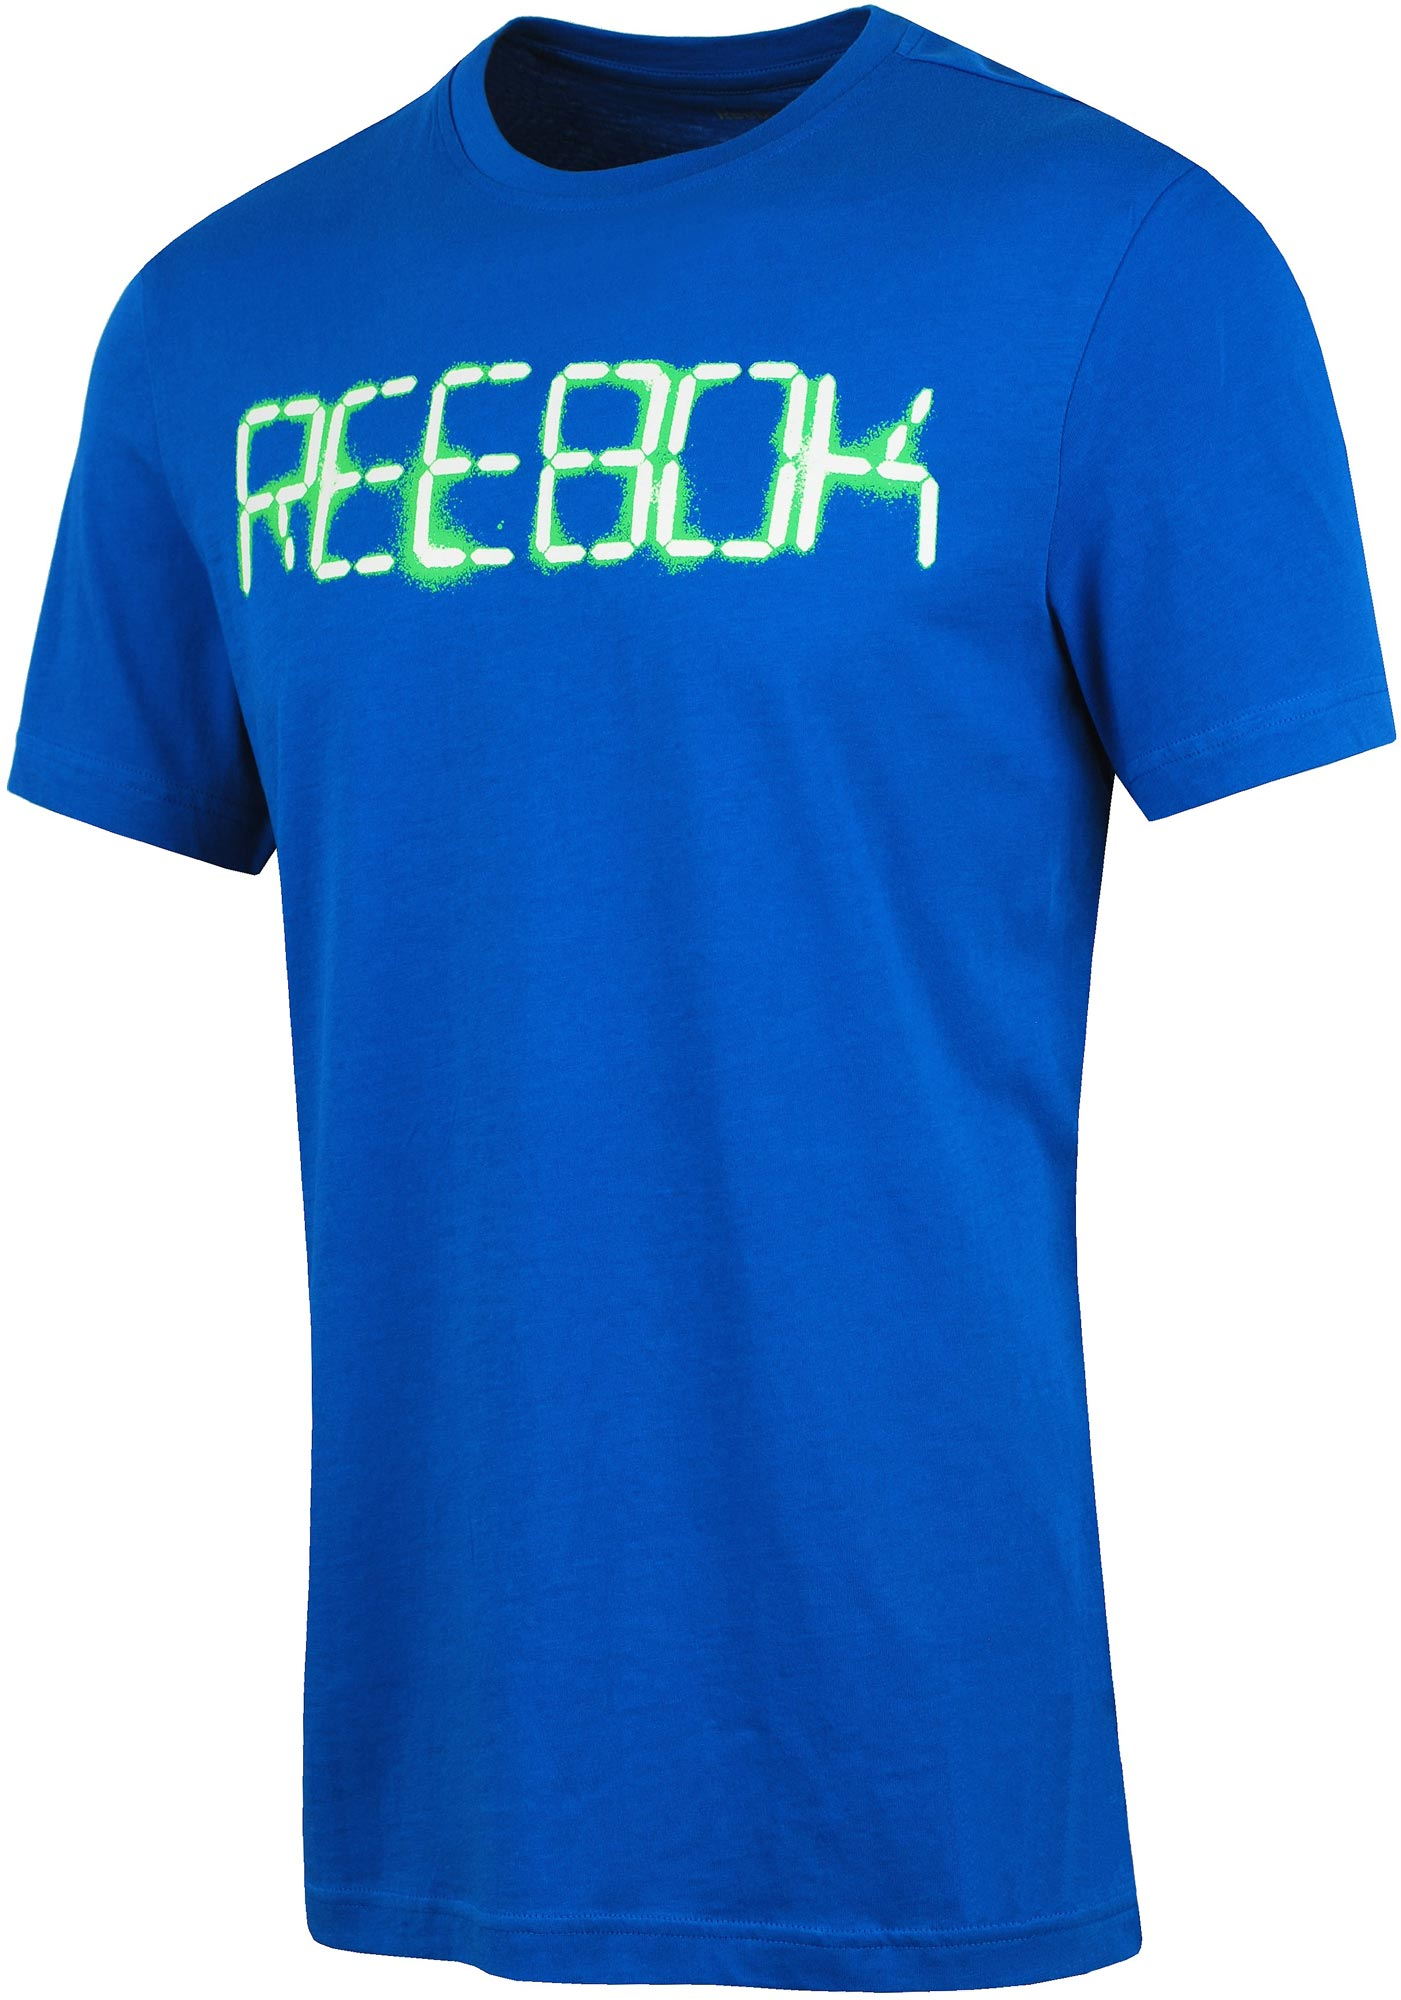 Reebok DIGITAL REEBOK READ GRAPHIC TEE  495c64358a